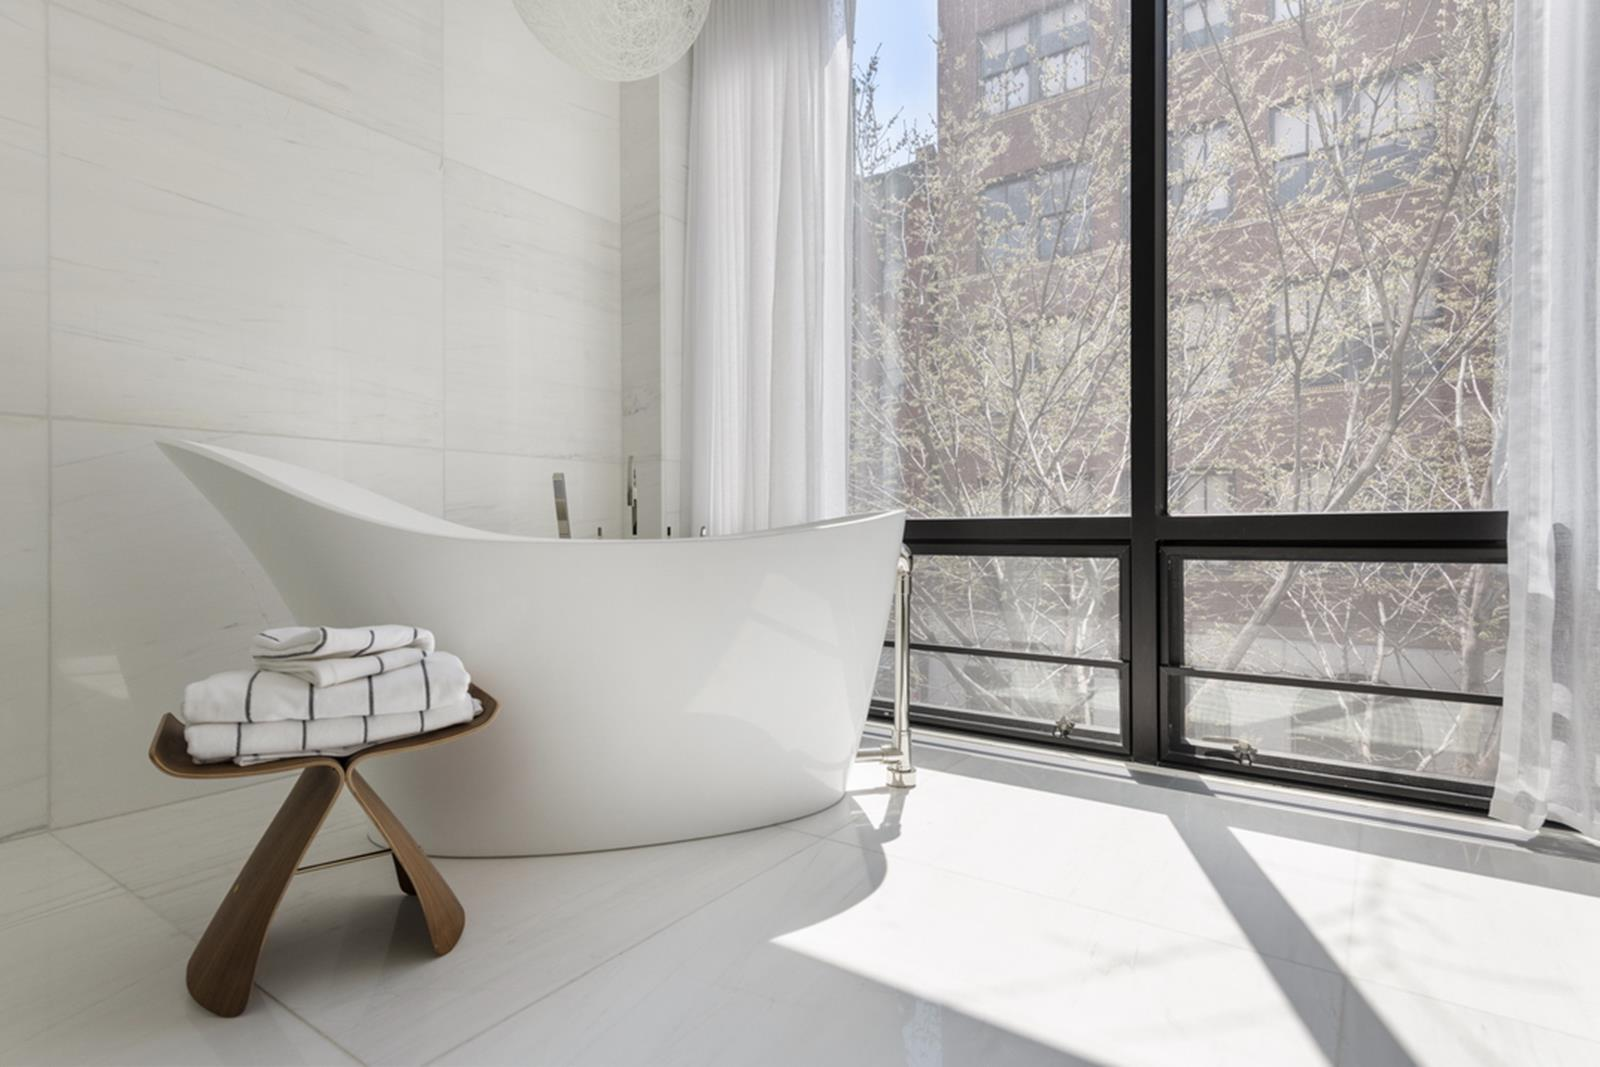 253 West 18th St, Building, a Luxury Home for Sale in New York, New ...